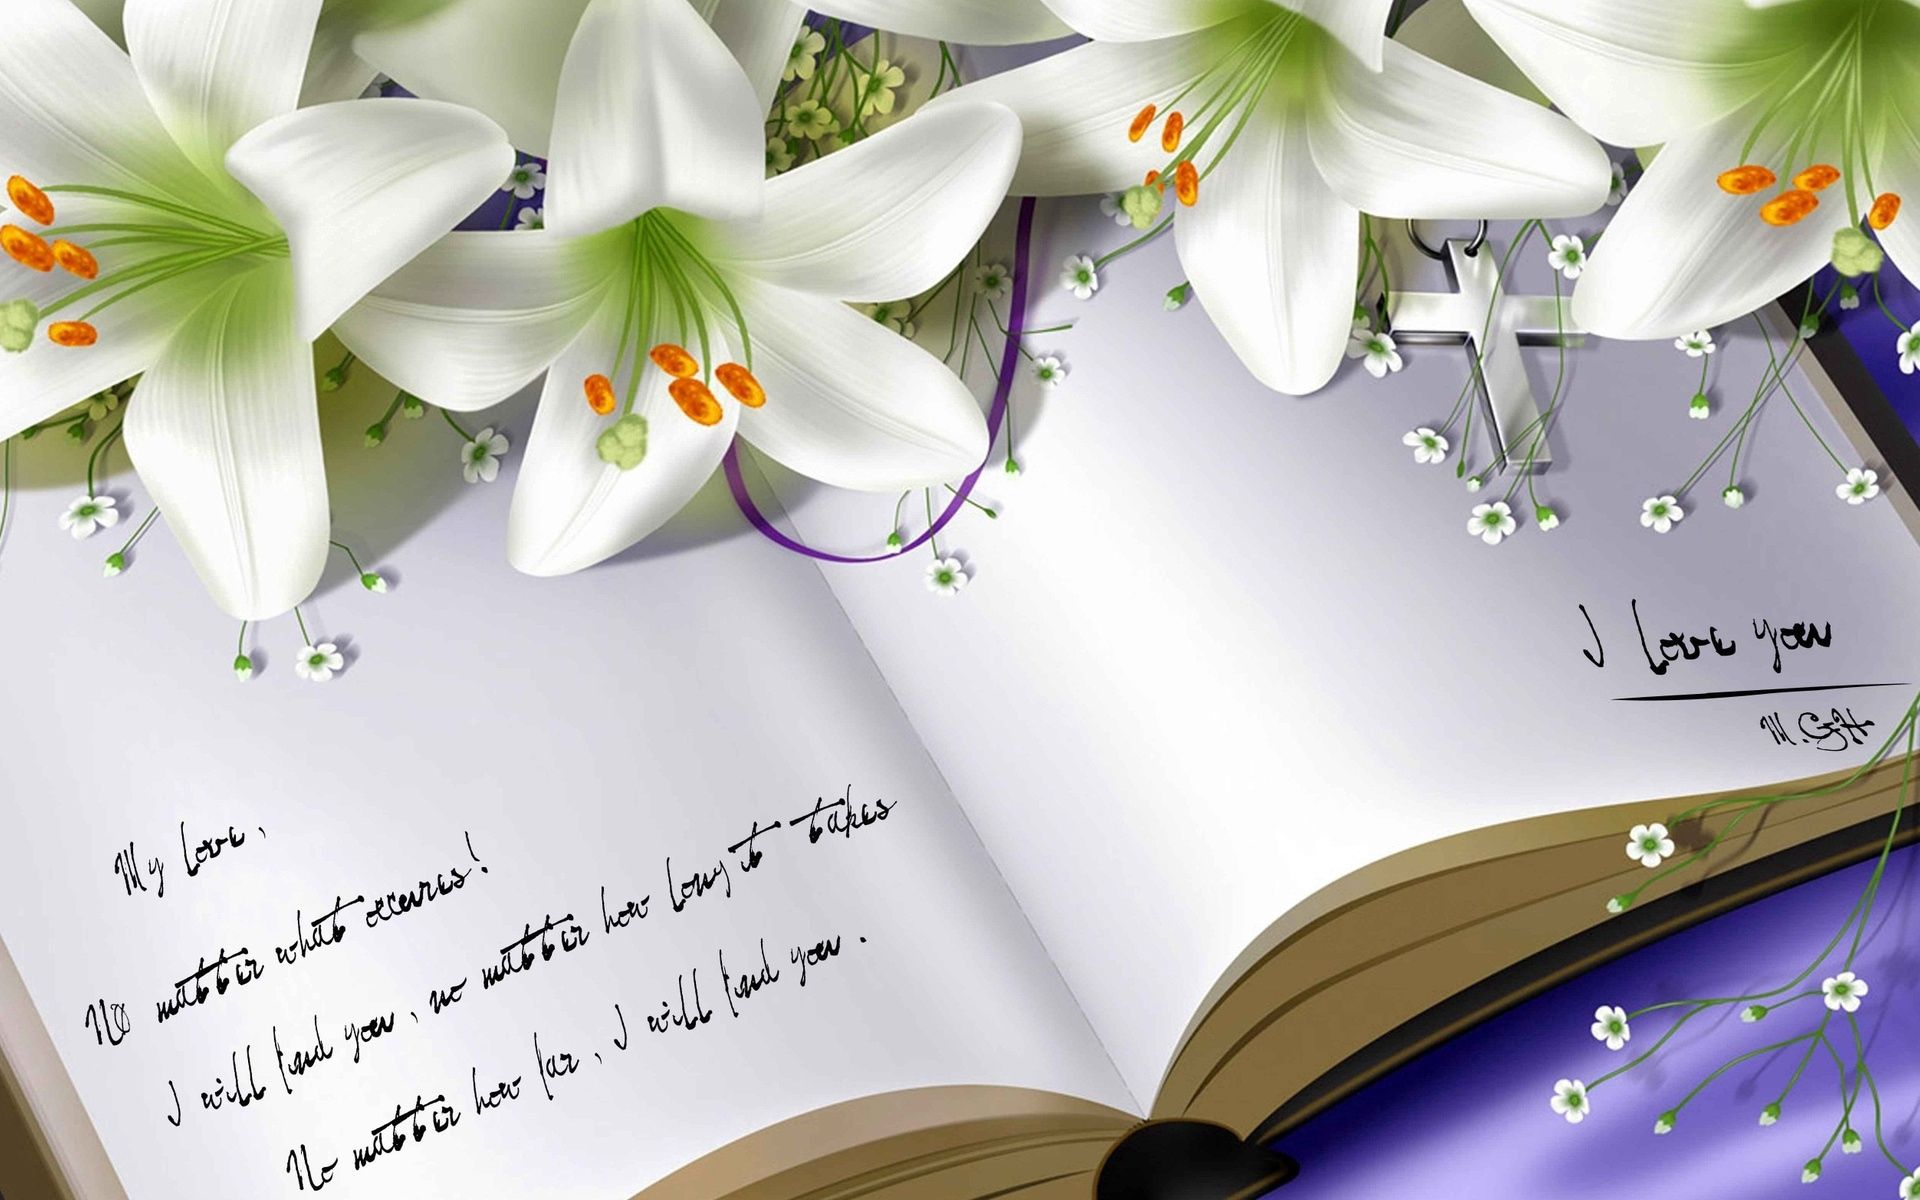 124371 download wallpaper Flowers, Lilies, Miscellanea, Miscellaneous, Book, Notebook screensavers and pictures for free